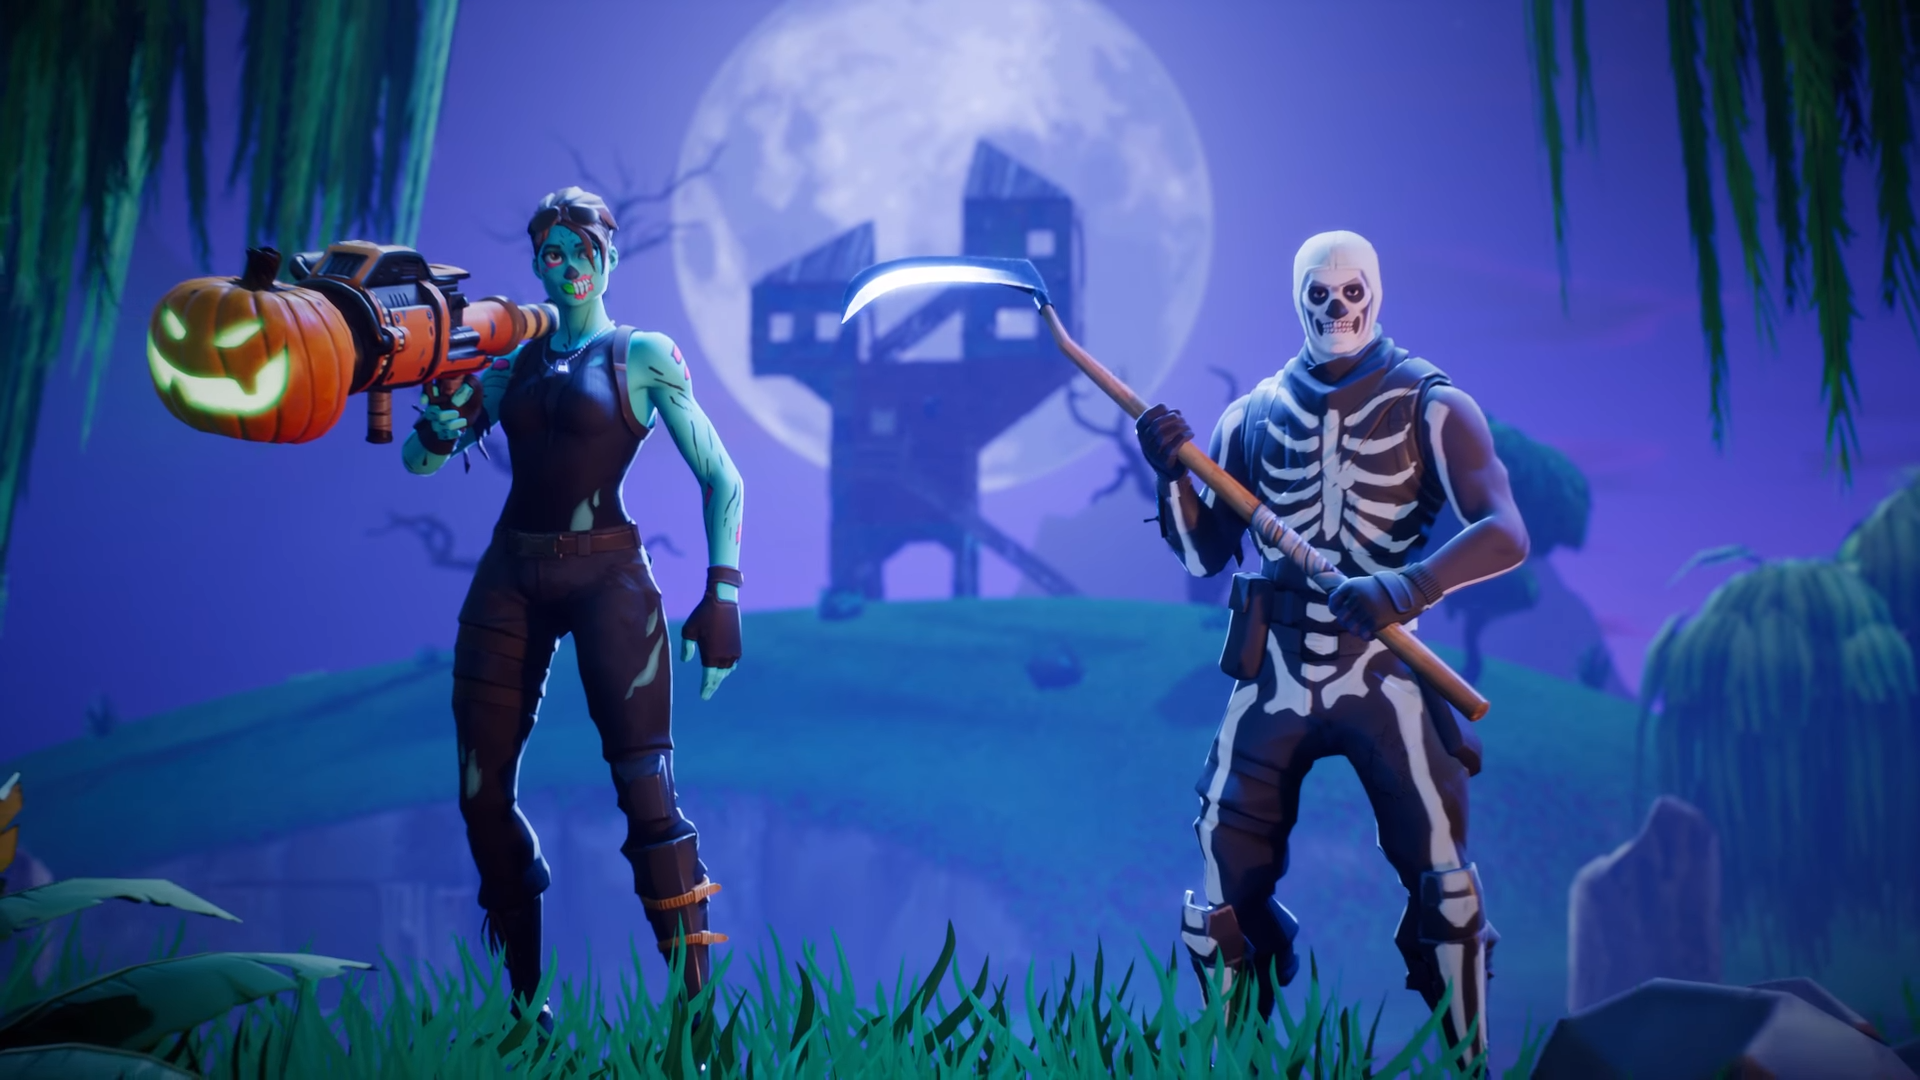 Fondos De Pantalla De Fortnite Battle Royale, Wallpapers